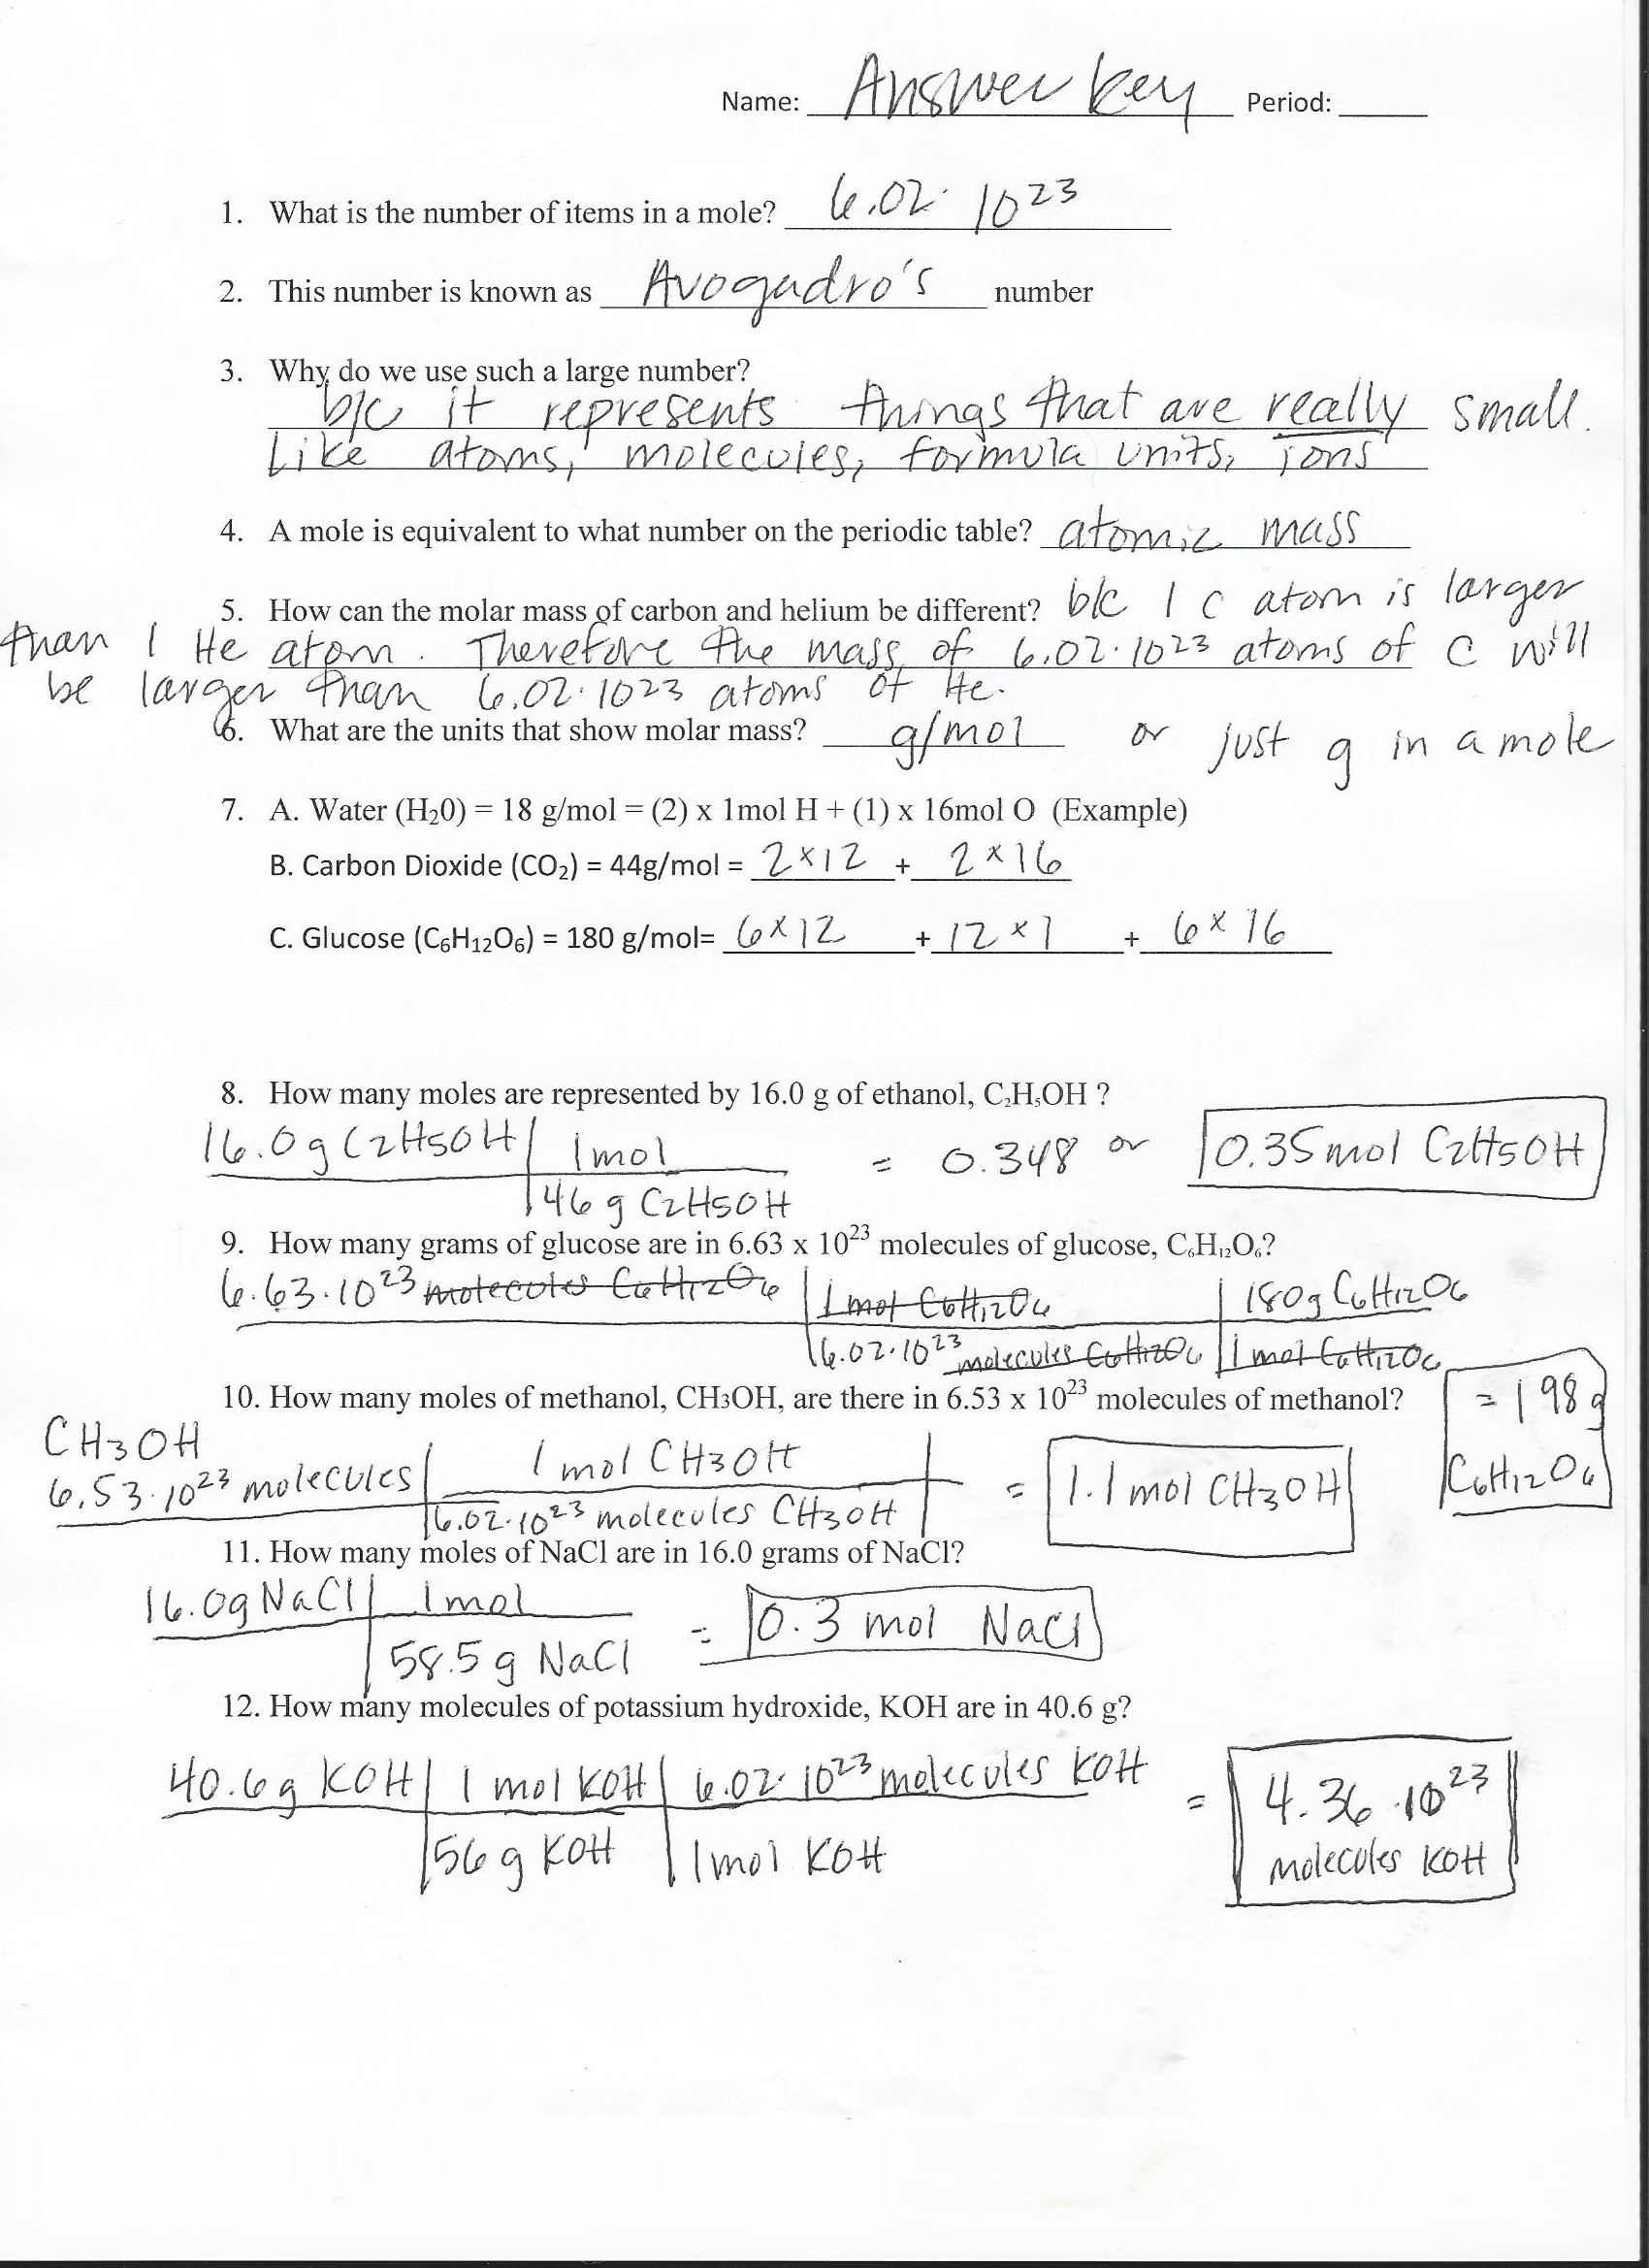 Chemistry Molecular Formula Worksheet Answers